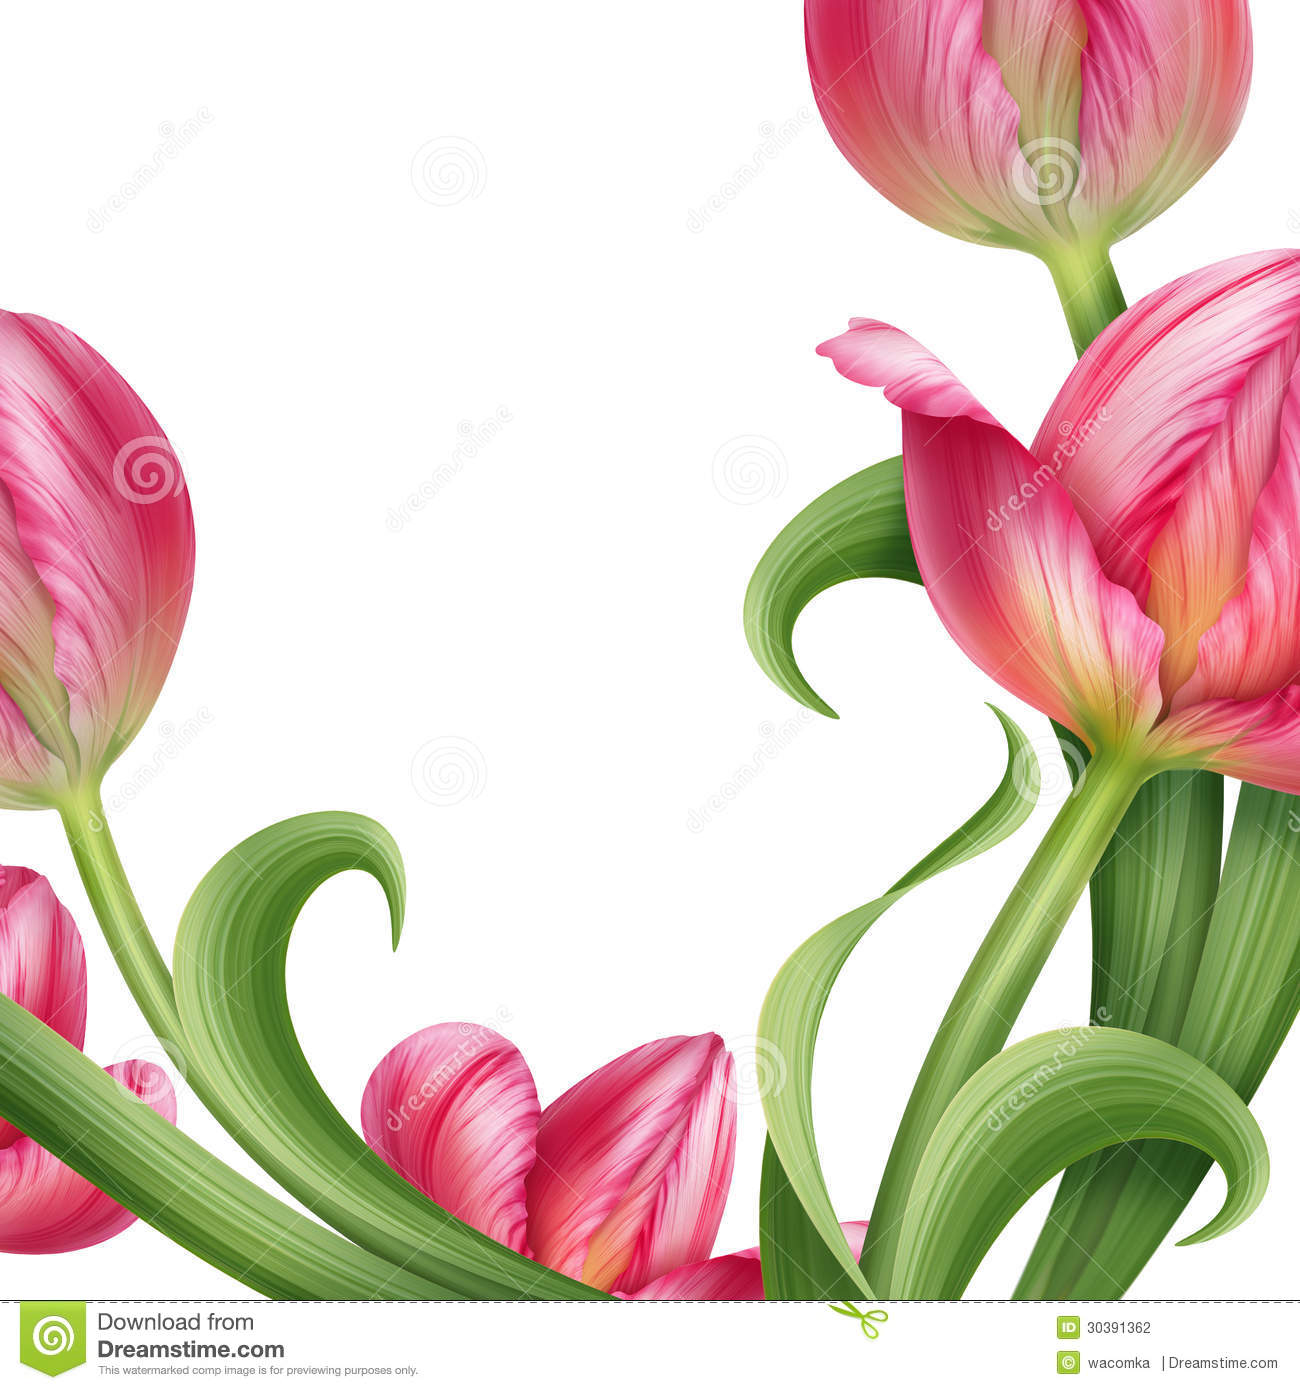 Realistic Pink Tulips Floral Illustration Stock ...